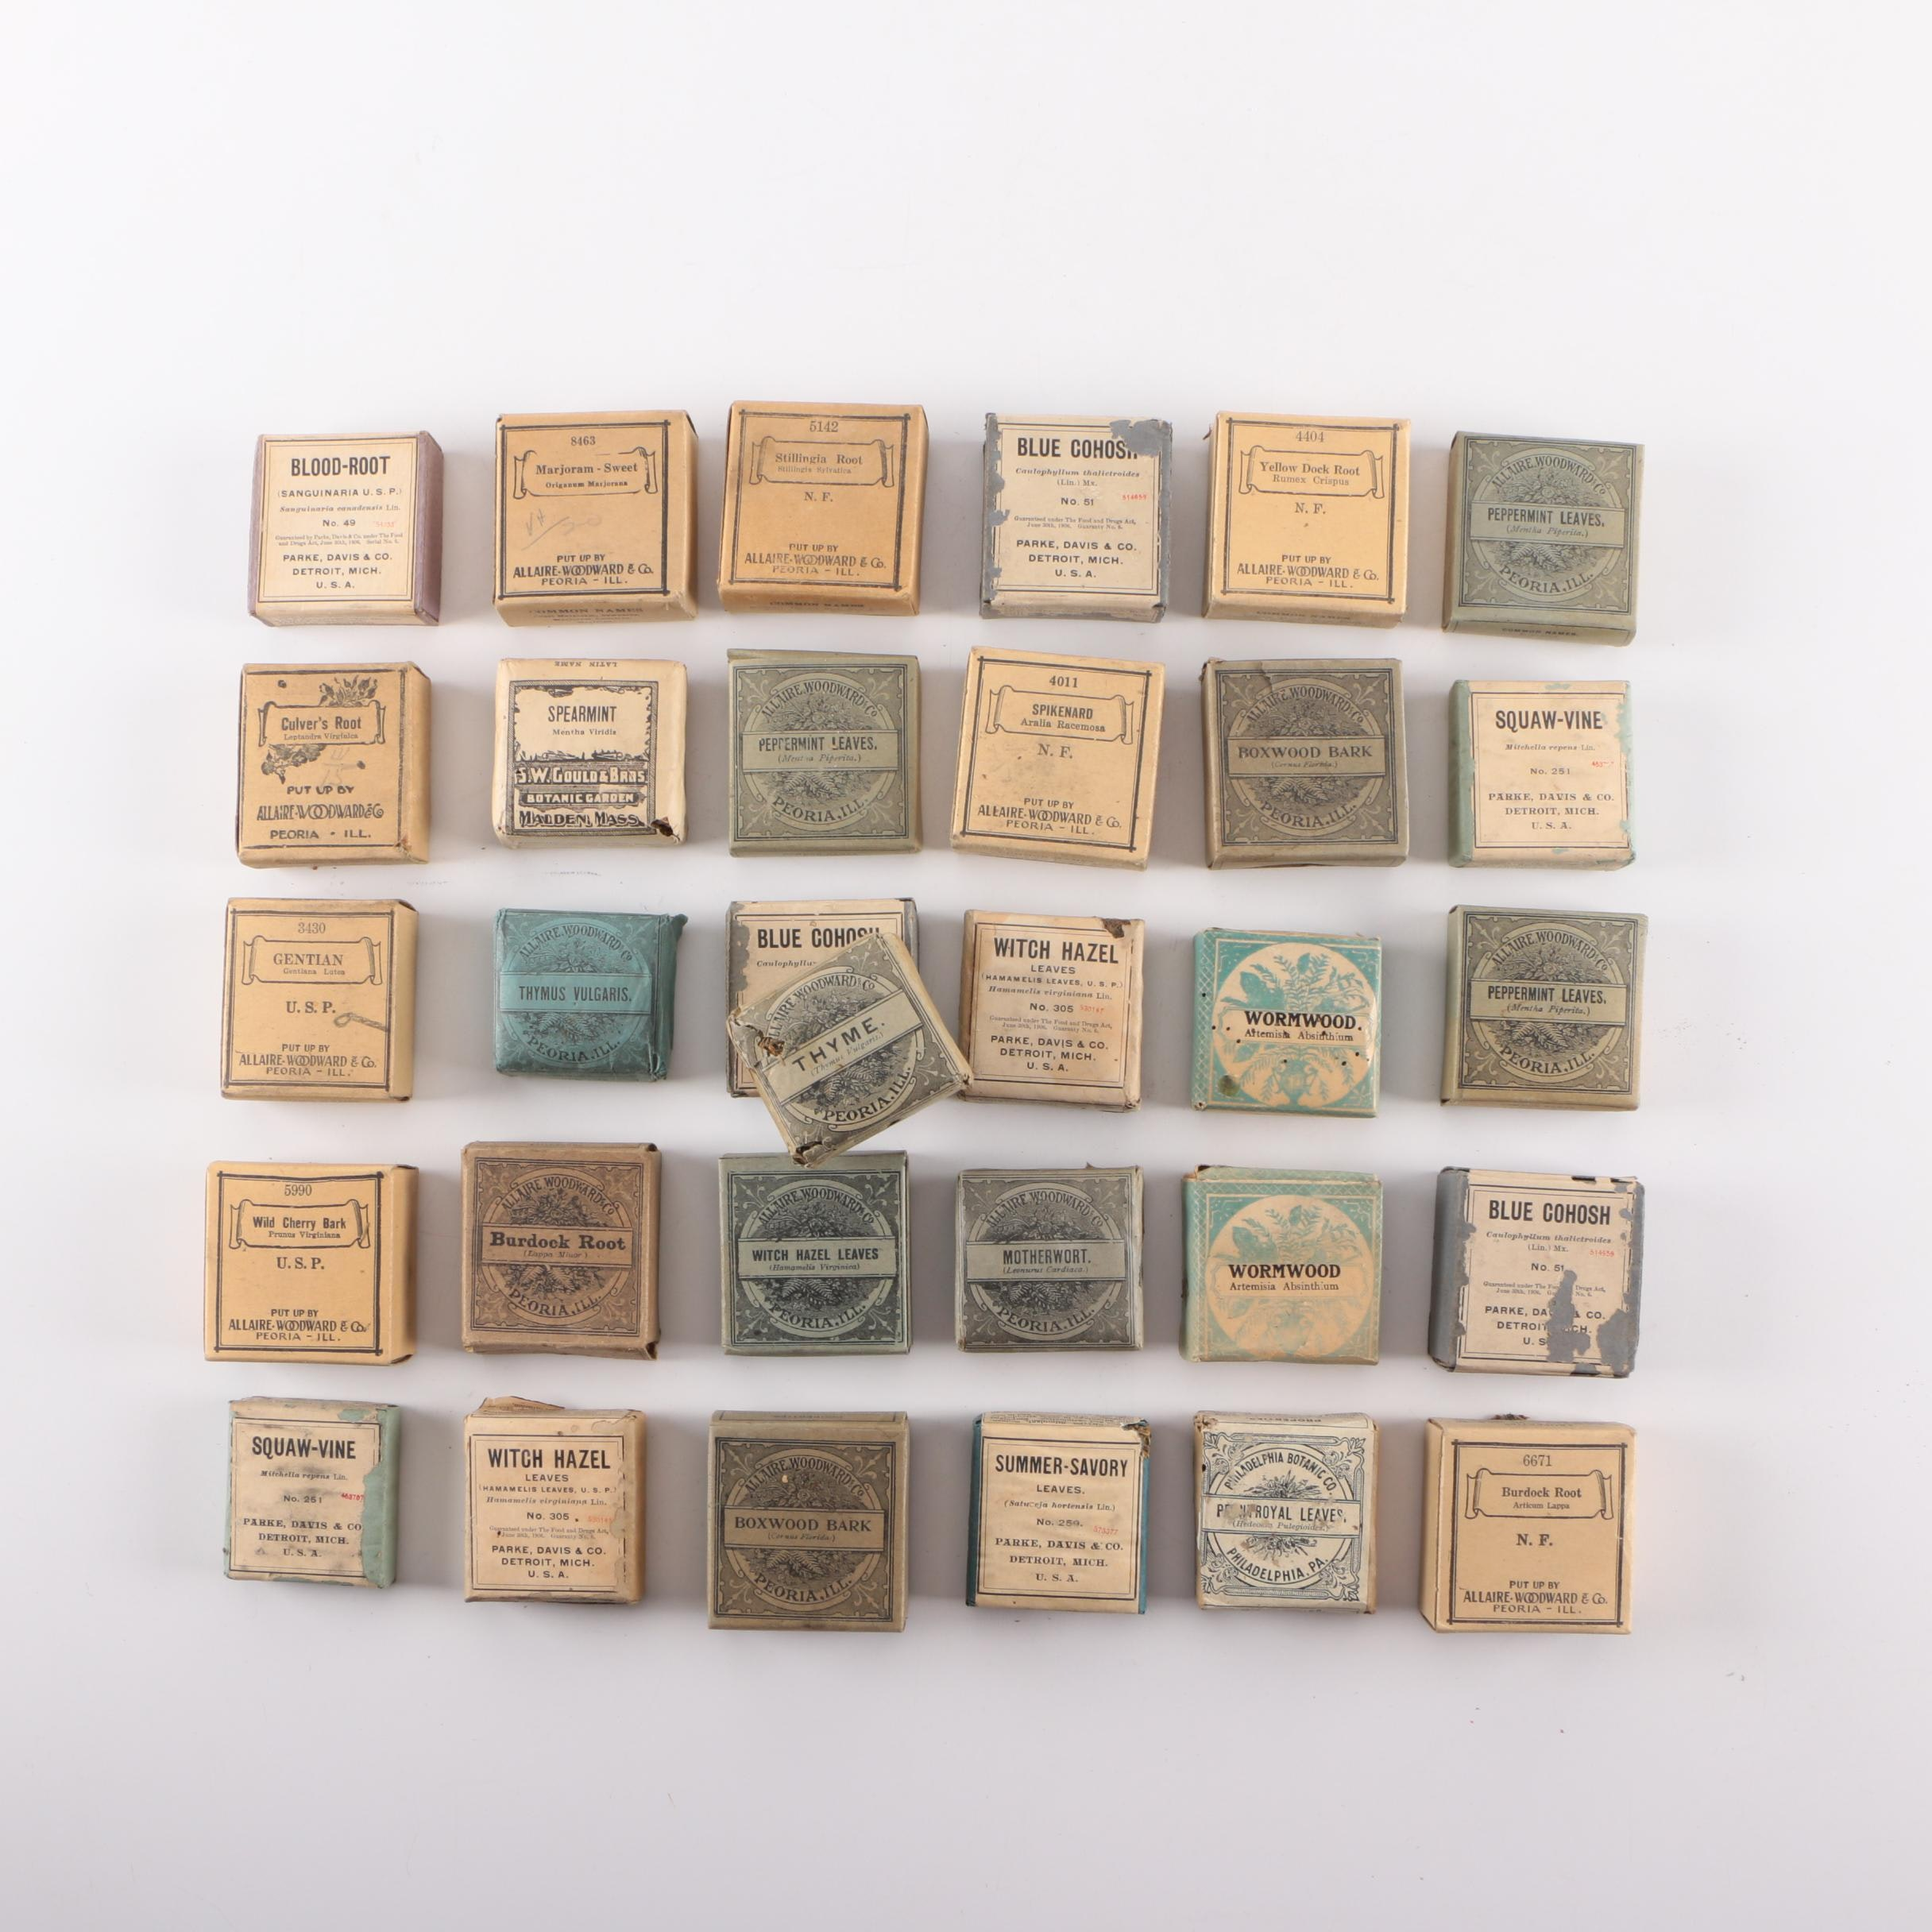 Vintage Paper and Cardboard Packets of Spices and Herbs